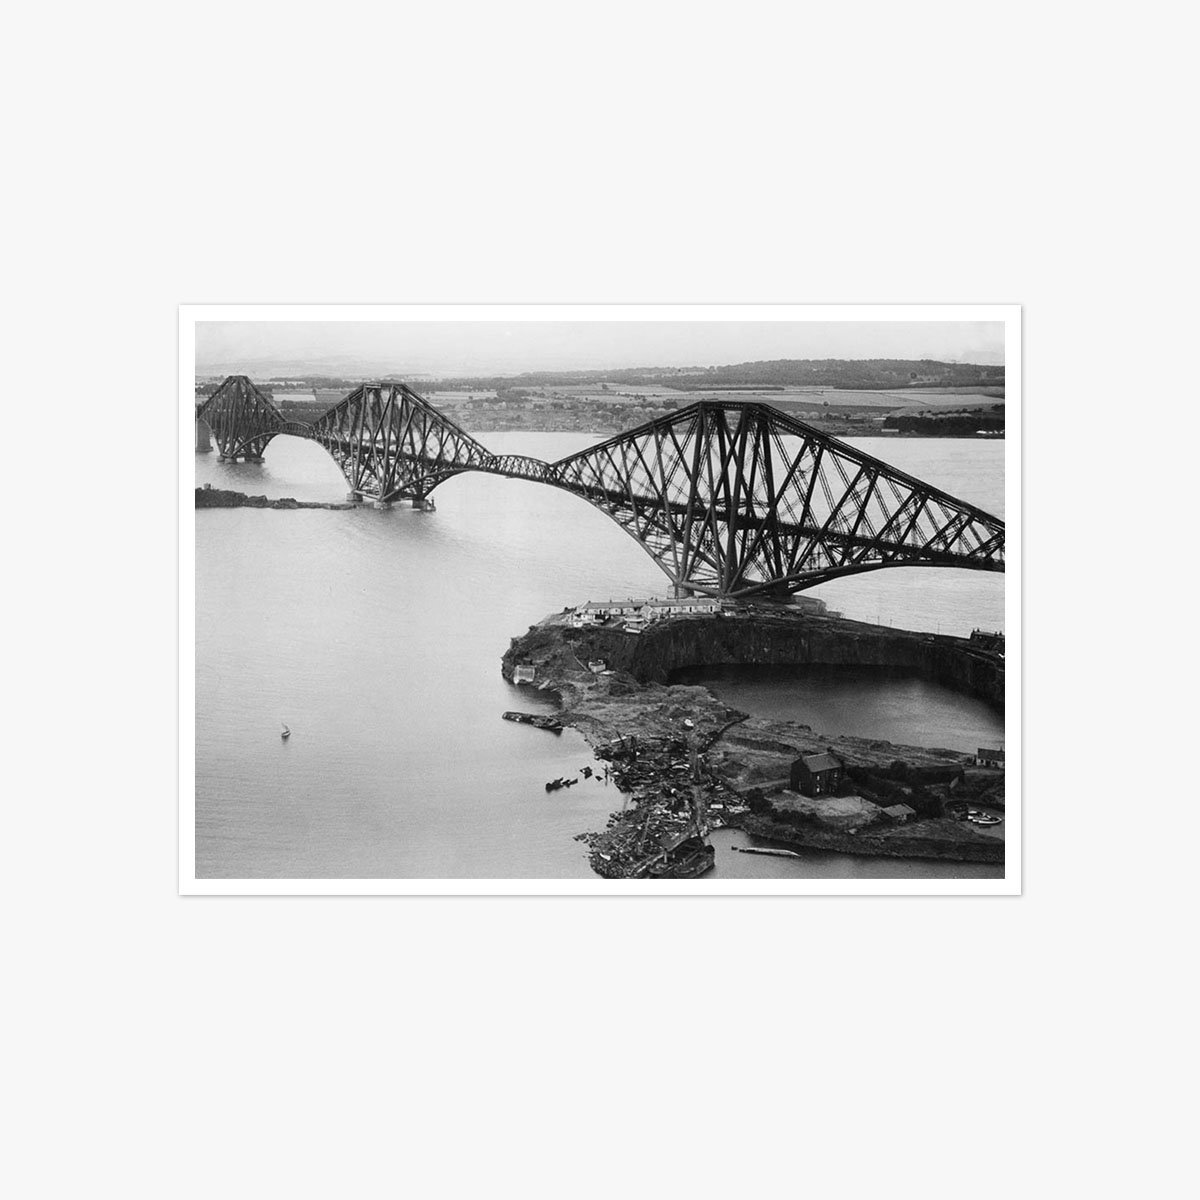 The Forth Rail Bridge by Frank Rust